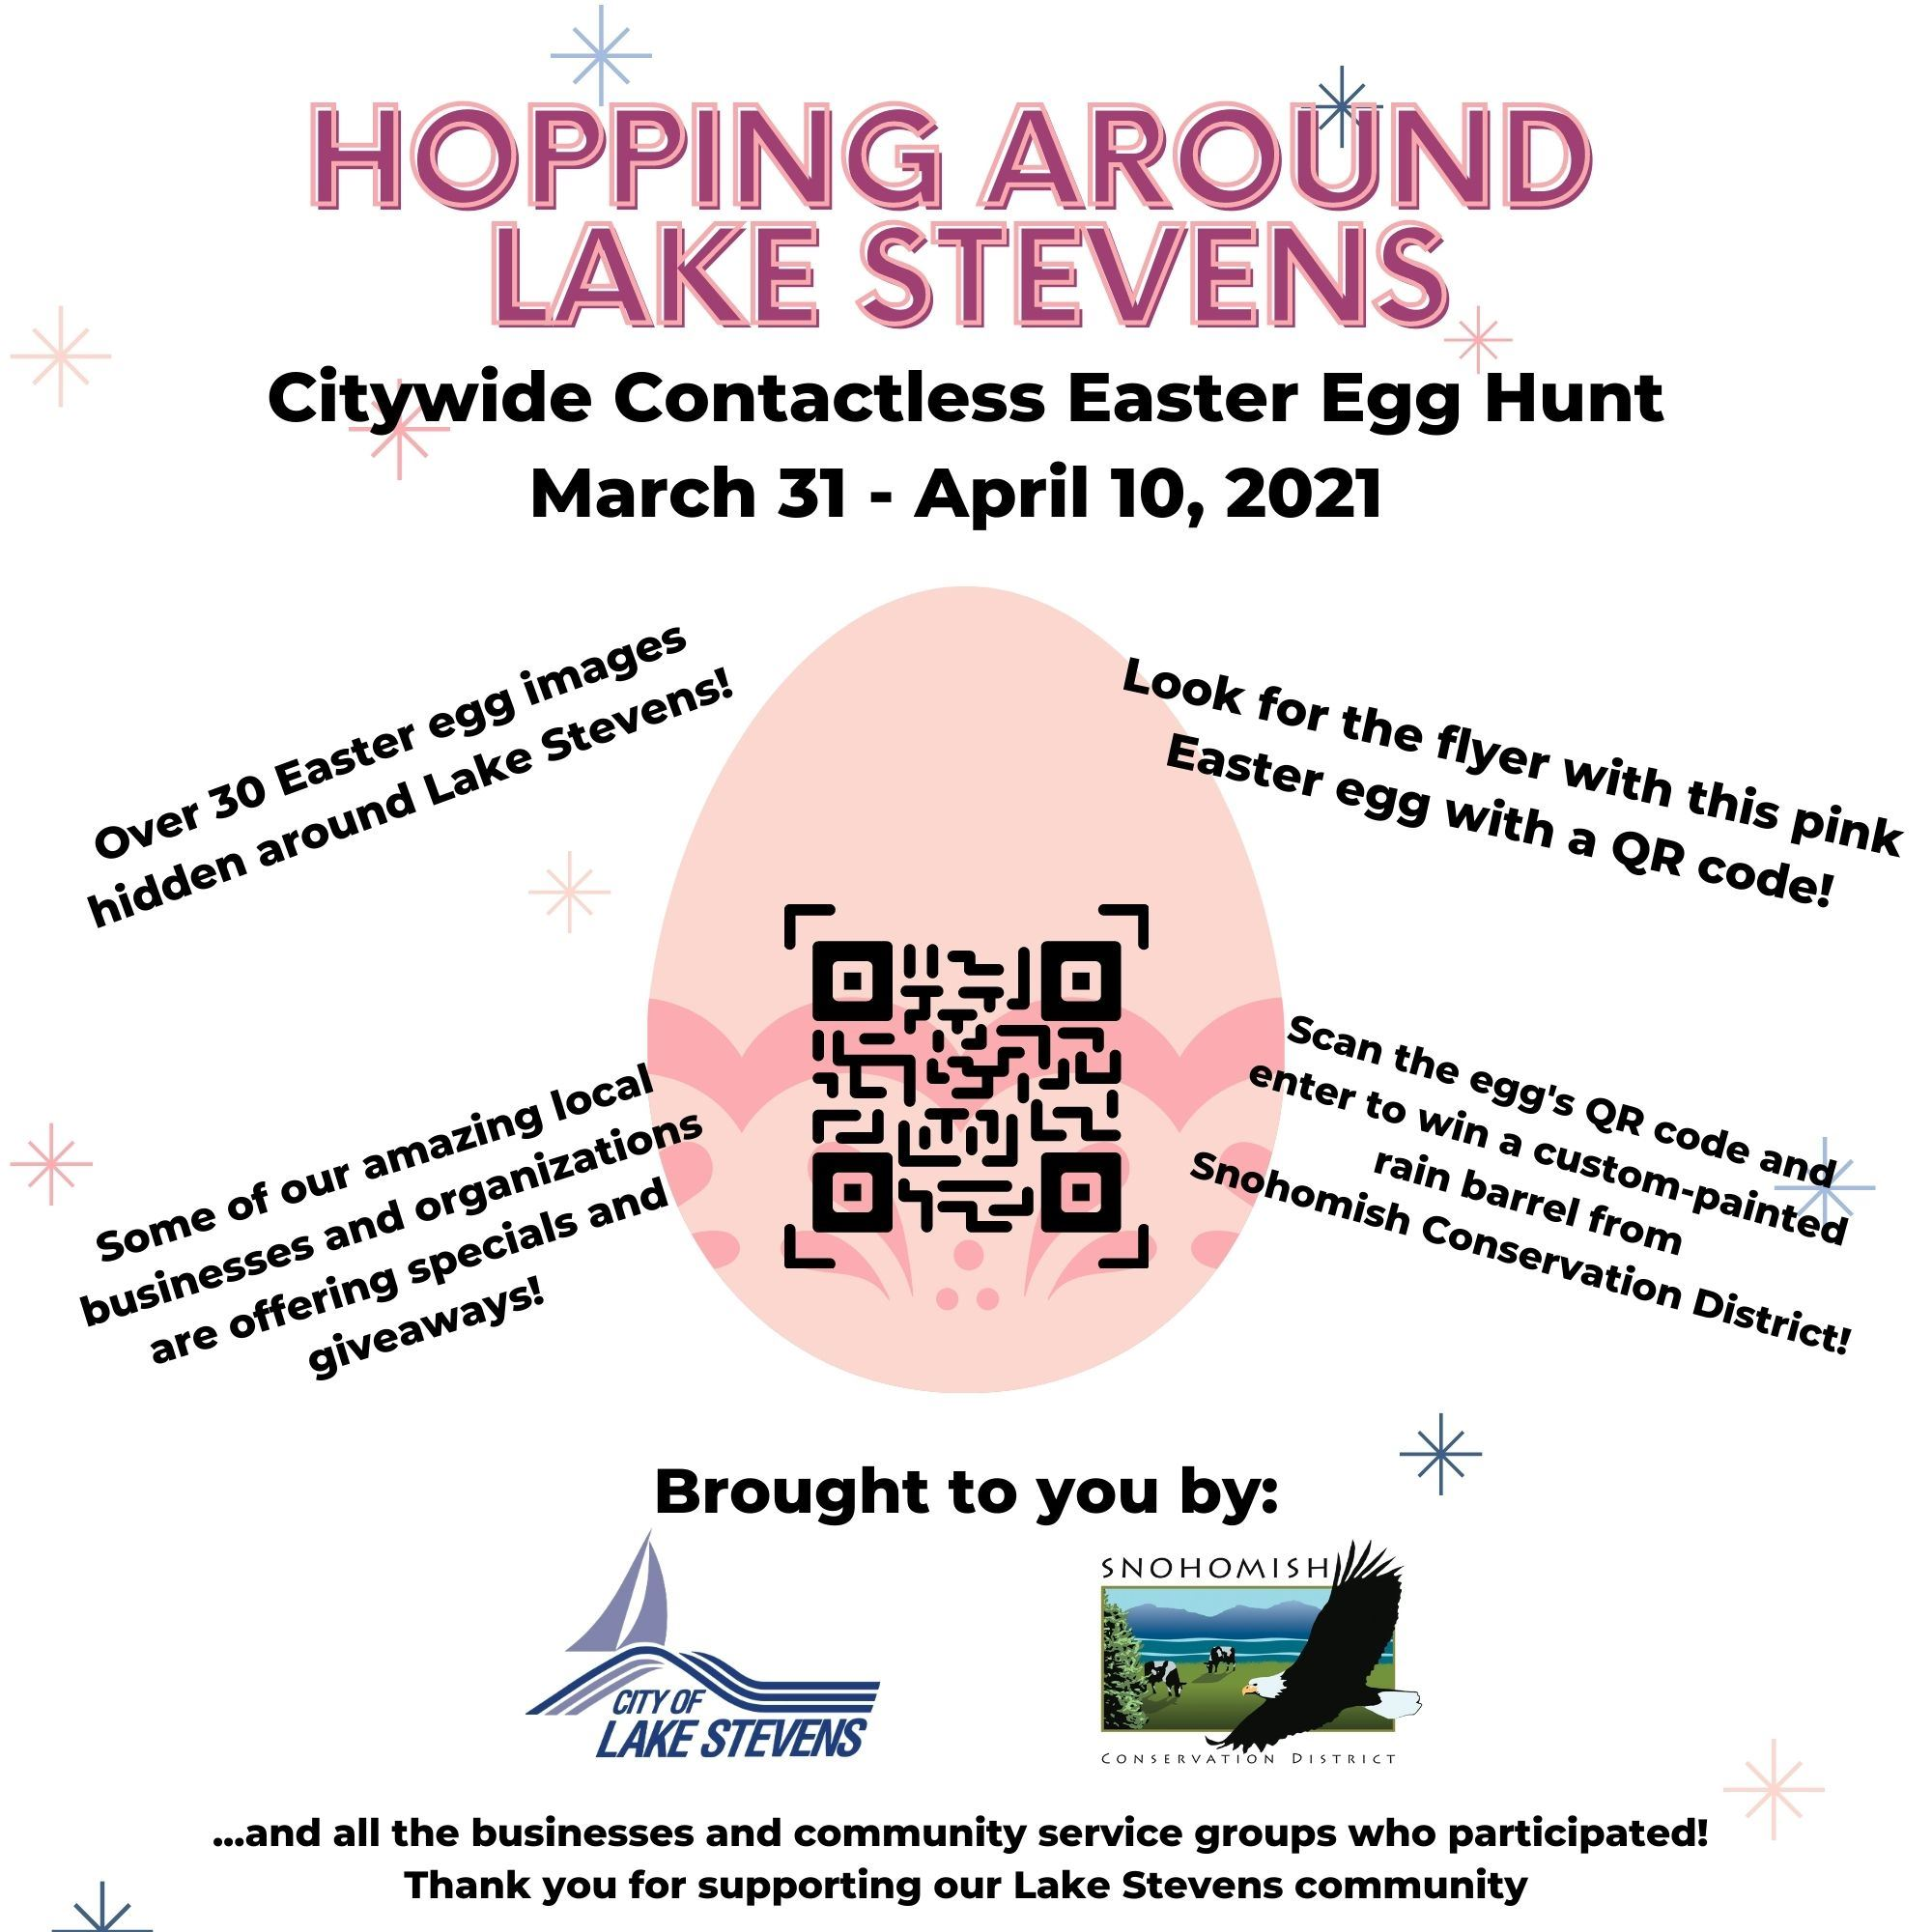 Hopping Around Lake Stevens Easter Egg Hunt graphic